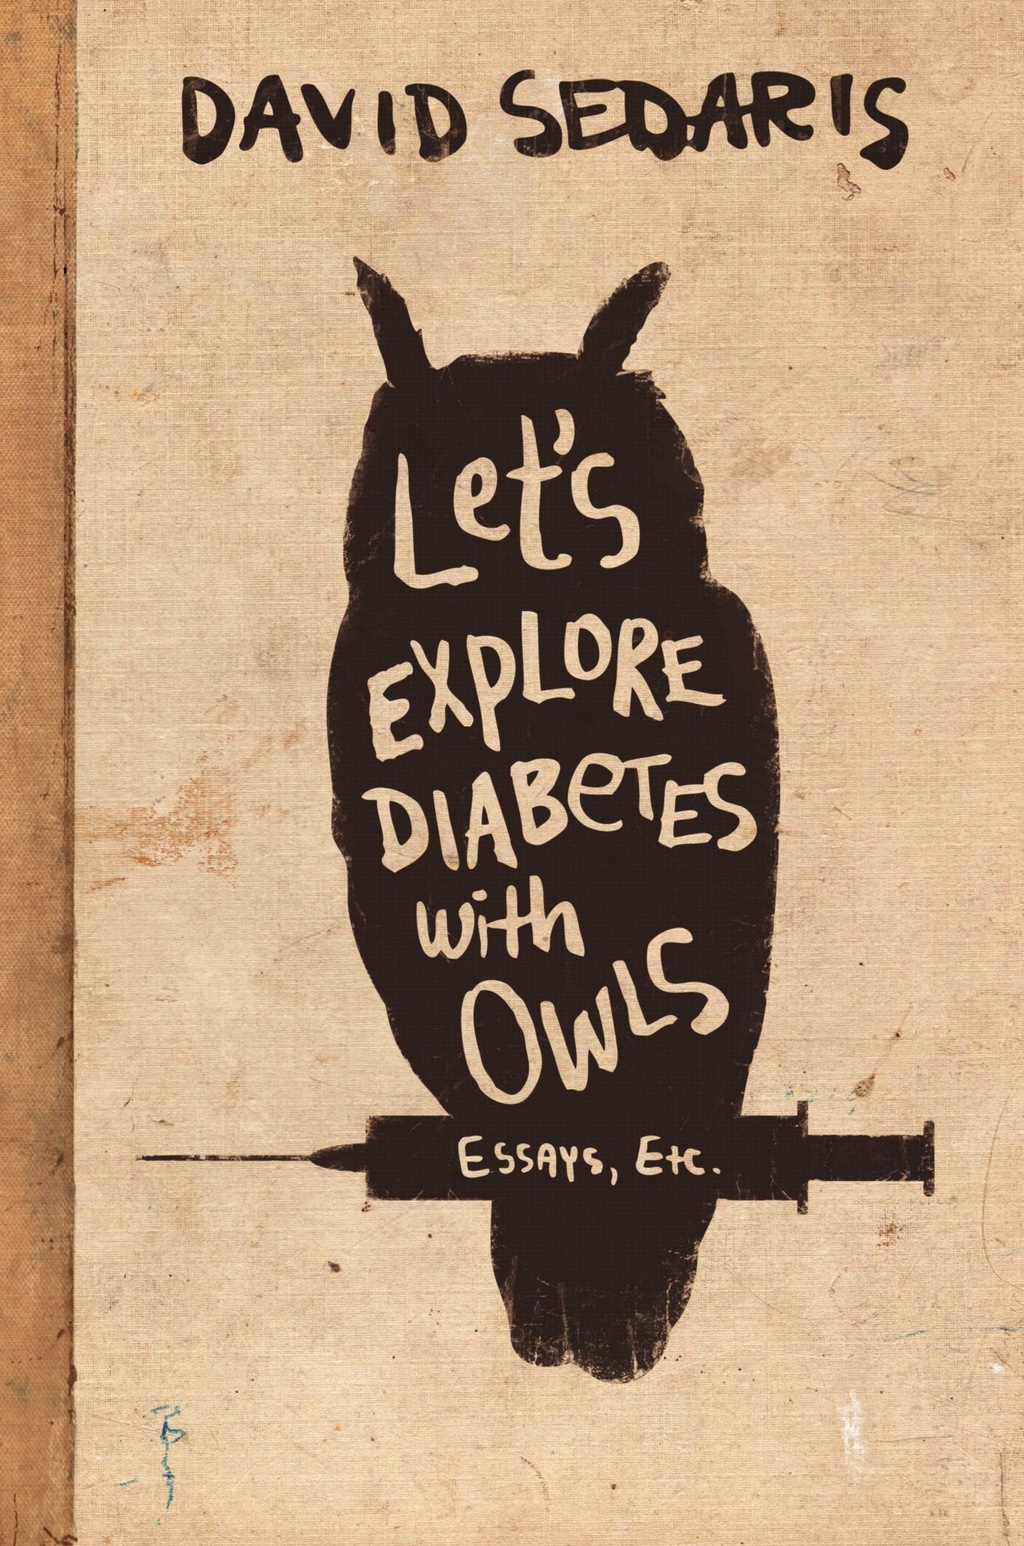 Lets Explore Diabetes with Owls